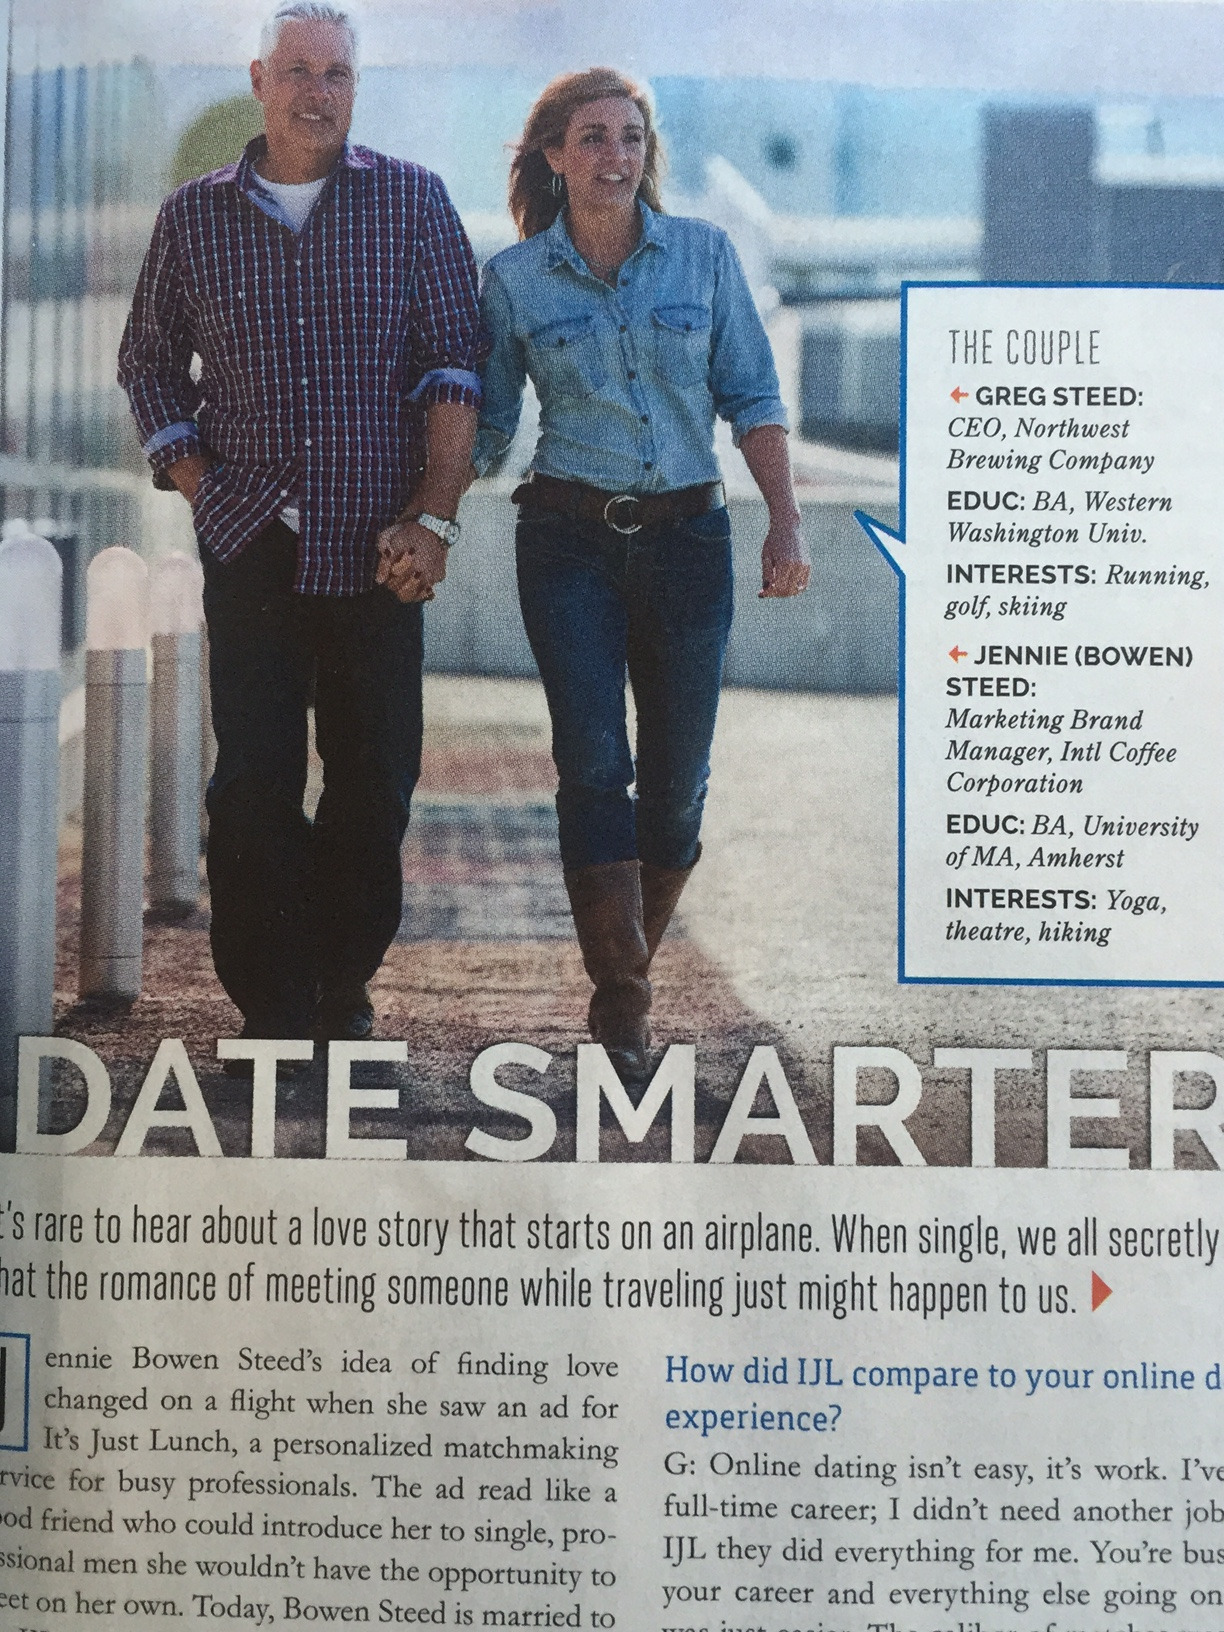 "Awkward photos…Date smarter but necessarily walk that way…   Take a look at this photo from an airplane magazine I was leafing through on my way home from teaching a recent needling seminar.  I am not really interested in matchmaking (which this ad is for), but the ""awkwardness"" of the gait caught my eye (not much on the gait cam this time, sorry).  Yes, their feet and legs seem to be in synch (for the most part), but take a look at the arms and hands. First of all, he has his right hand in his pocket, which will restrict its motion during forward movement of his left leg. In the shot, his right leg is forward (as is hers), though they are slightly out of synch. His left arm and hand don't move forward that much in that he adducts it across his body, so he seems to move his left shoulder up and forward to compensate. She appears to be resisting this motion somewhat with her right arm as her right leg comes forward and she needs to lean her body to the right. Also note the increased abduction of her left arm and forearm as it extends in tandem with her left leg and thigh.    Try walking with your right arm moving forward with your right leg. Notice how your right shoulder resists moving forward in tandem with the right hip? This is phasic, as Dr Allen likes to say, and because there is not an opposite force to counteract the forward movement of the hip in the saggital plane, you often lean to move the center of gravity to that side in the coronal plane .  Wouldn't it make slightly more sense, when walking hand in hand to have the opposite legs in synch, rather the same ones? Hmm…Food for thought and fodder. All that from a  little picture : )"